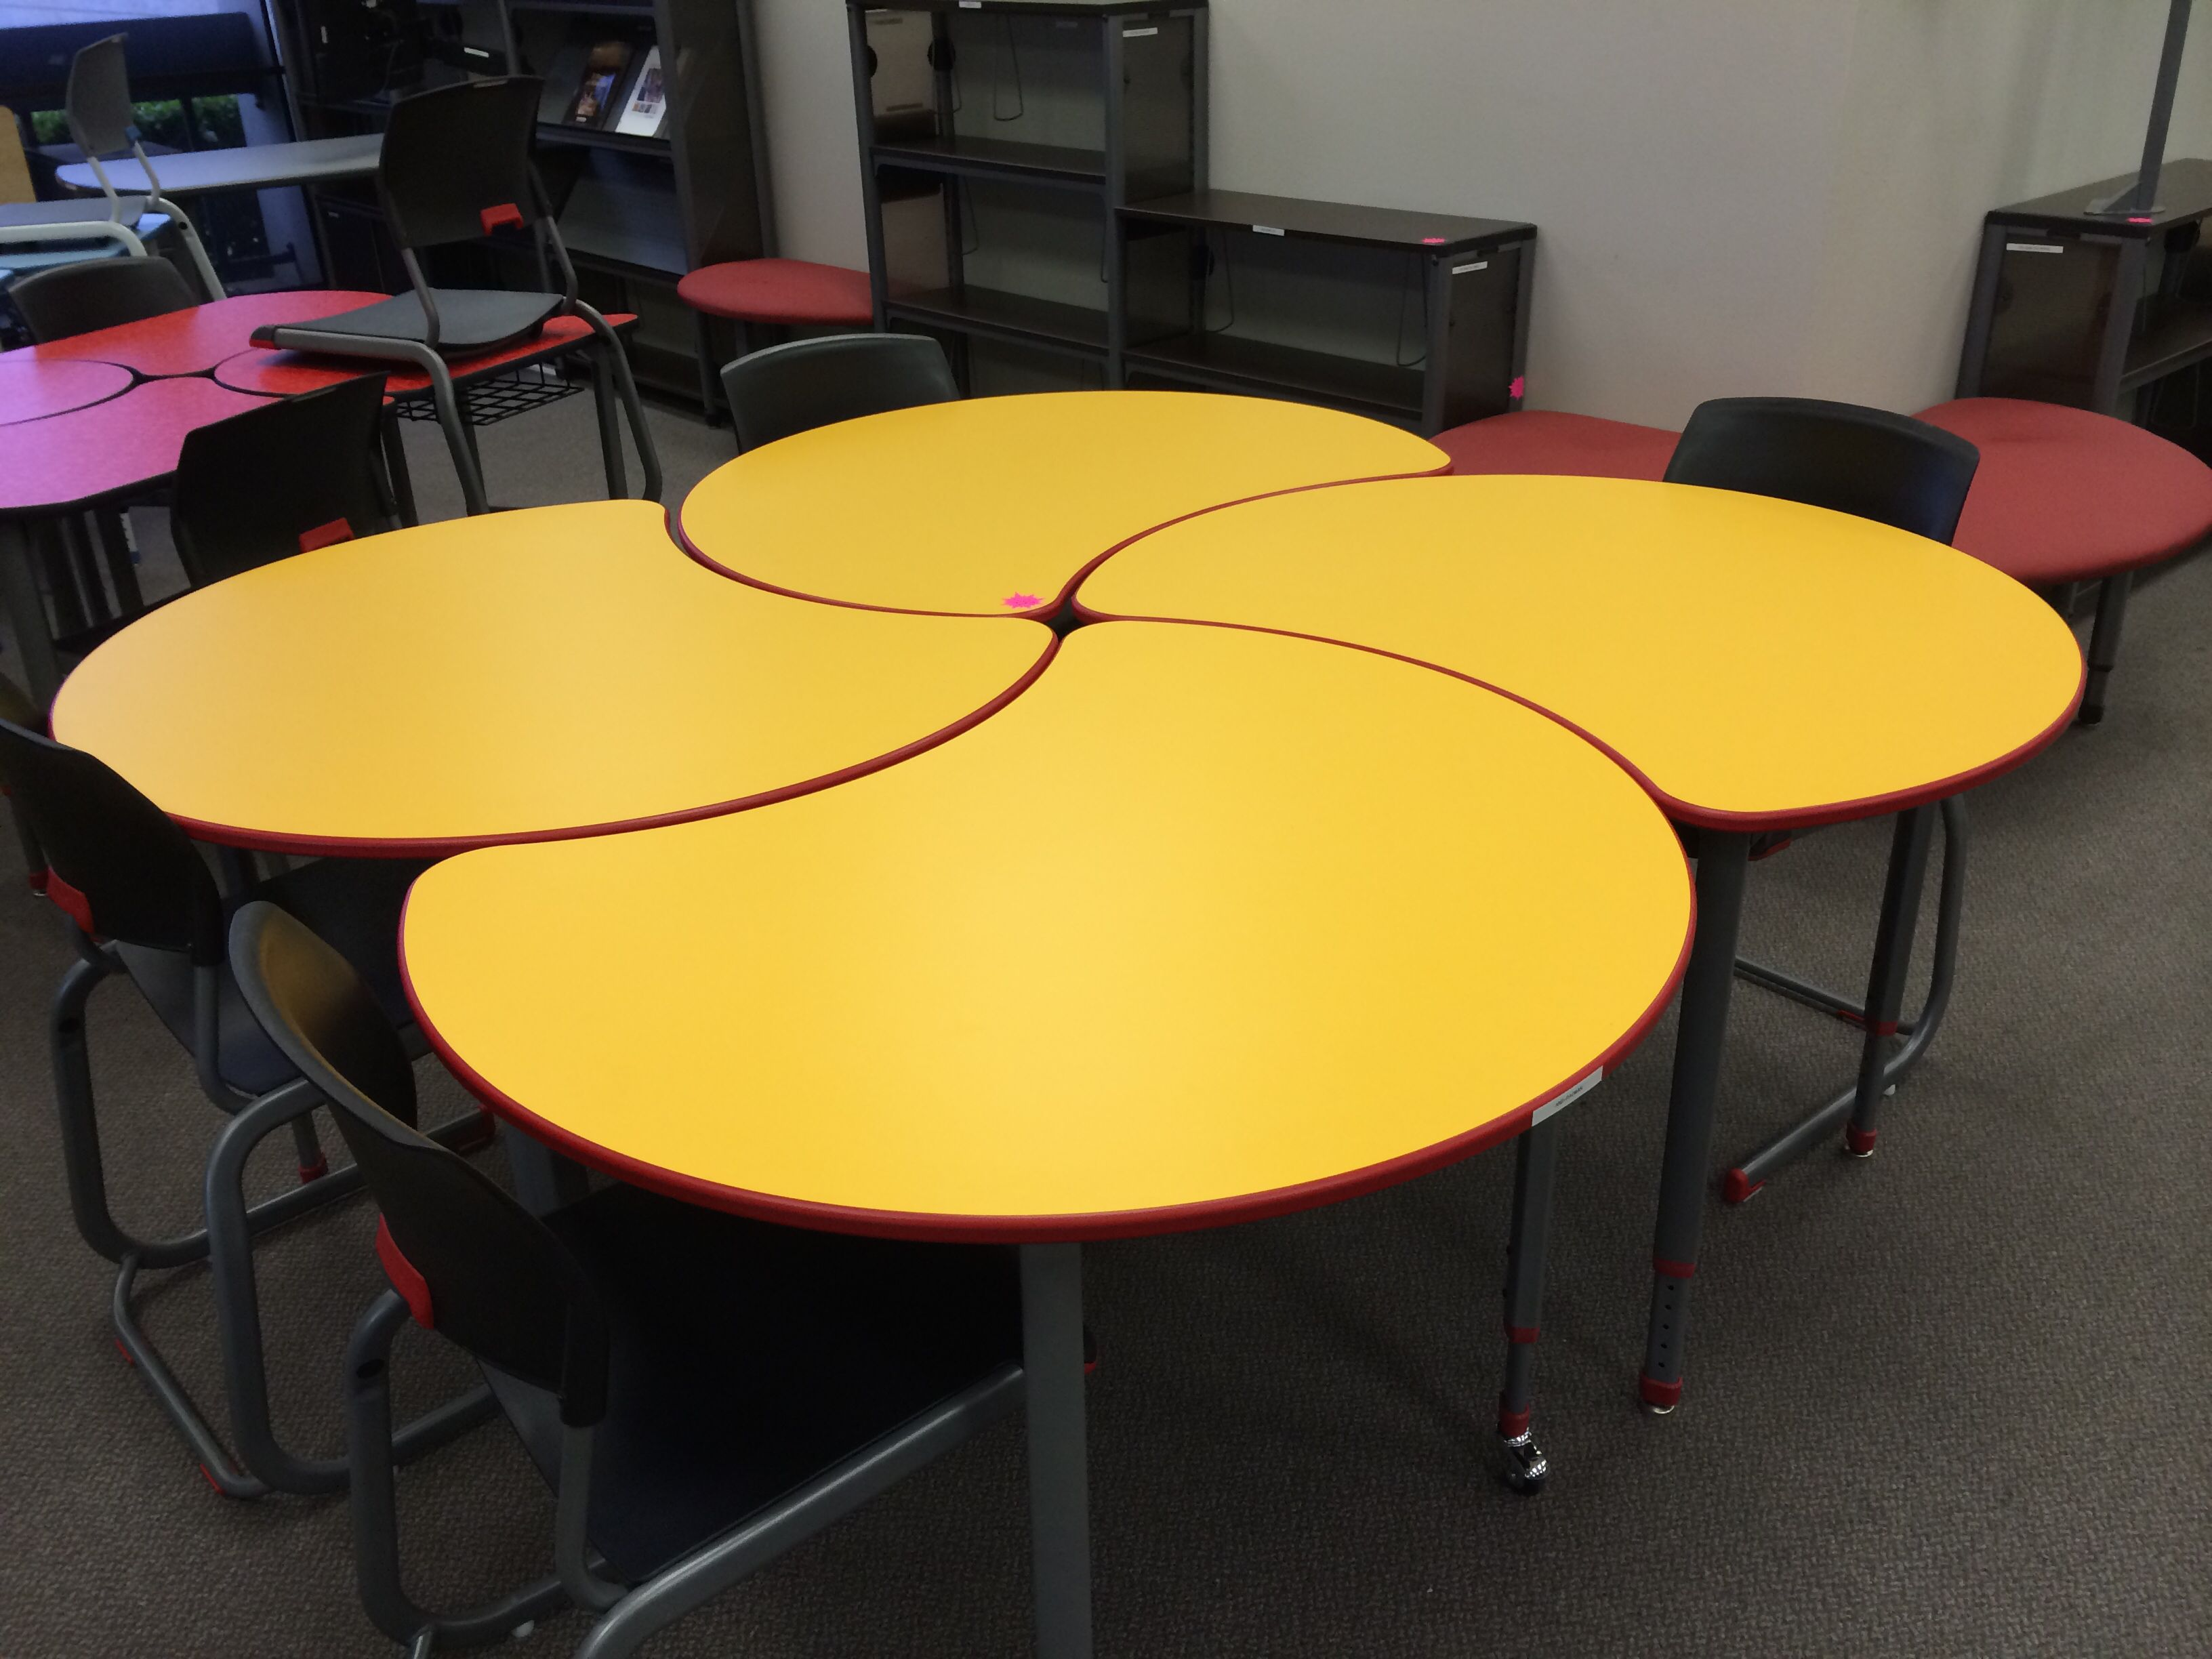 PAC man configuration from Paragon School Furniture